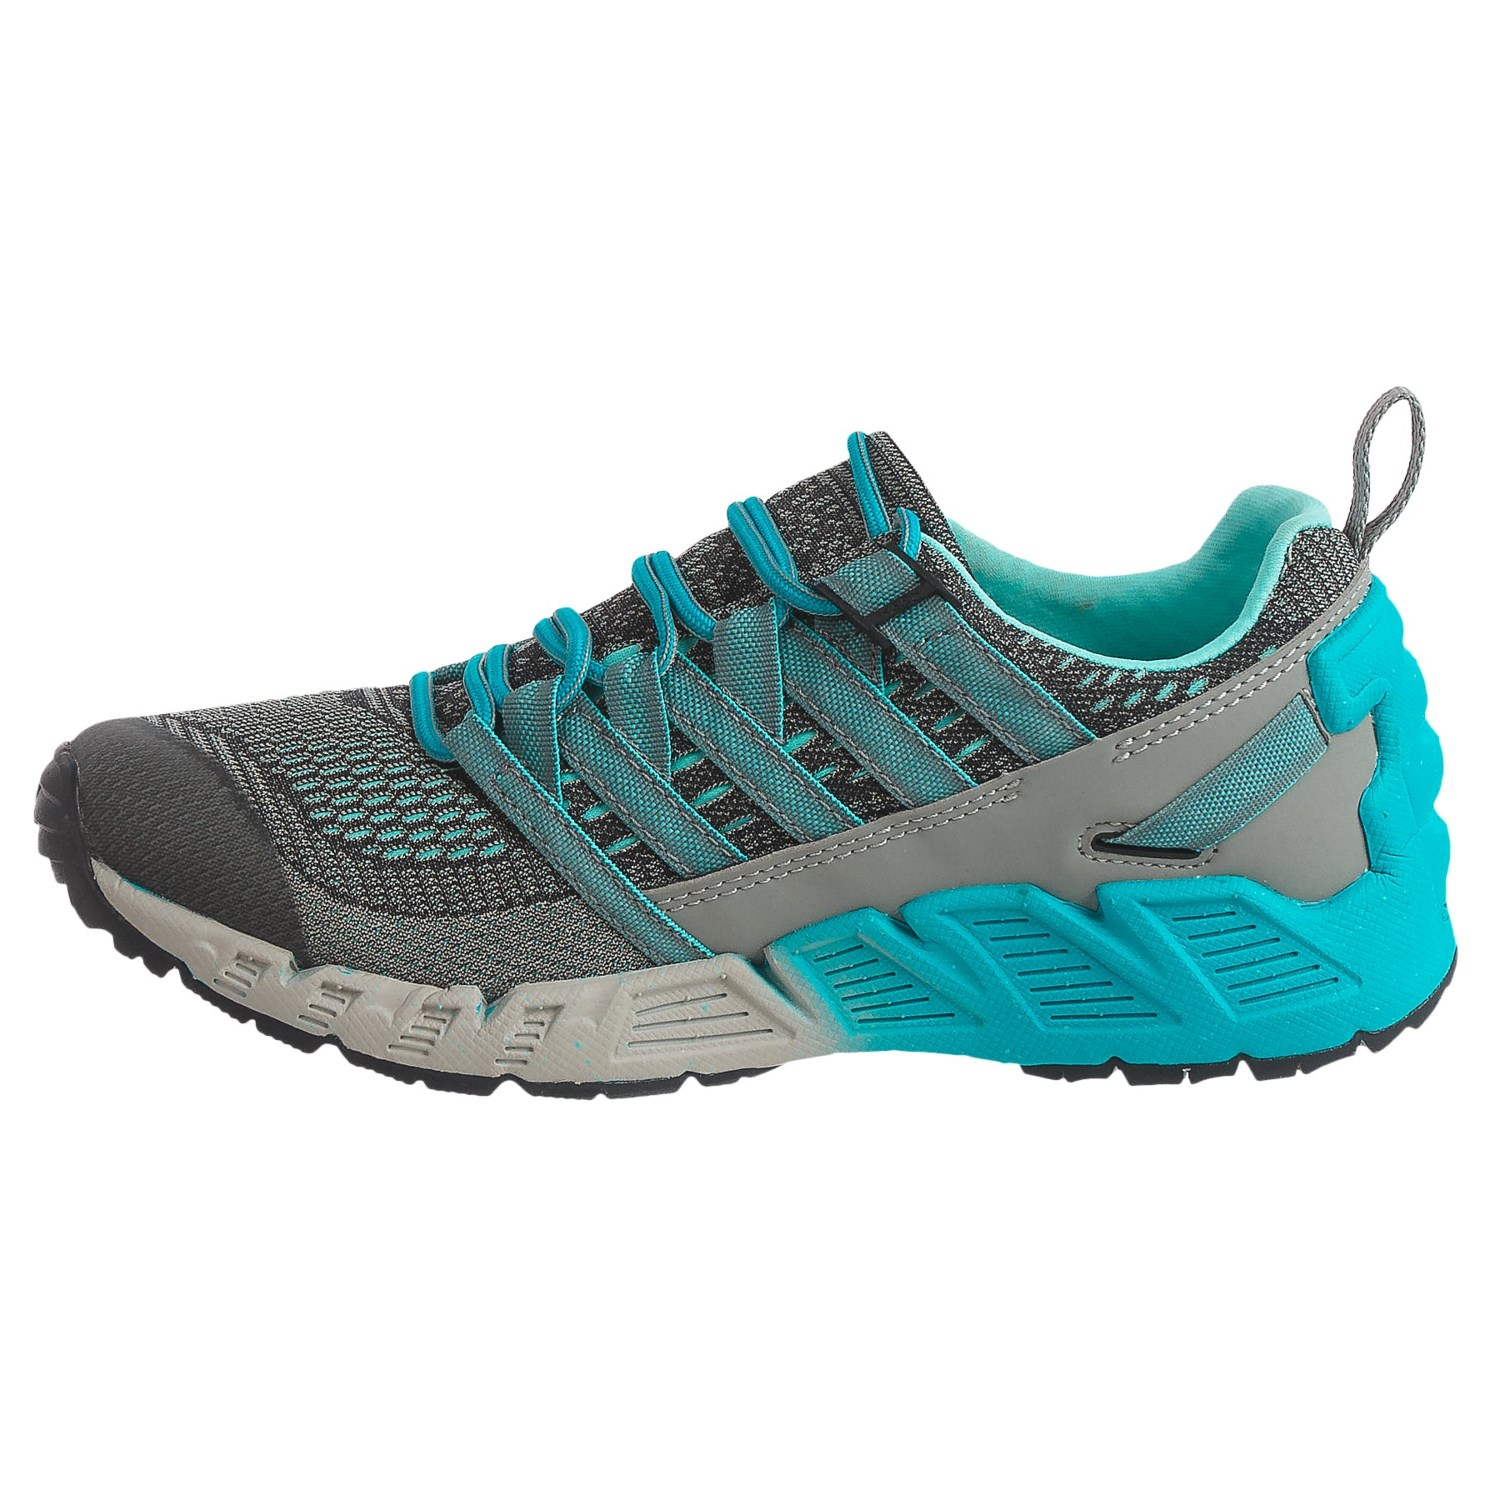 Keen Versago Hiking Shoes For Women Save